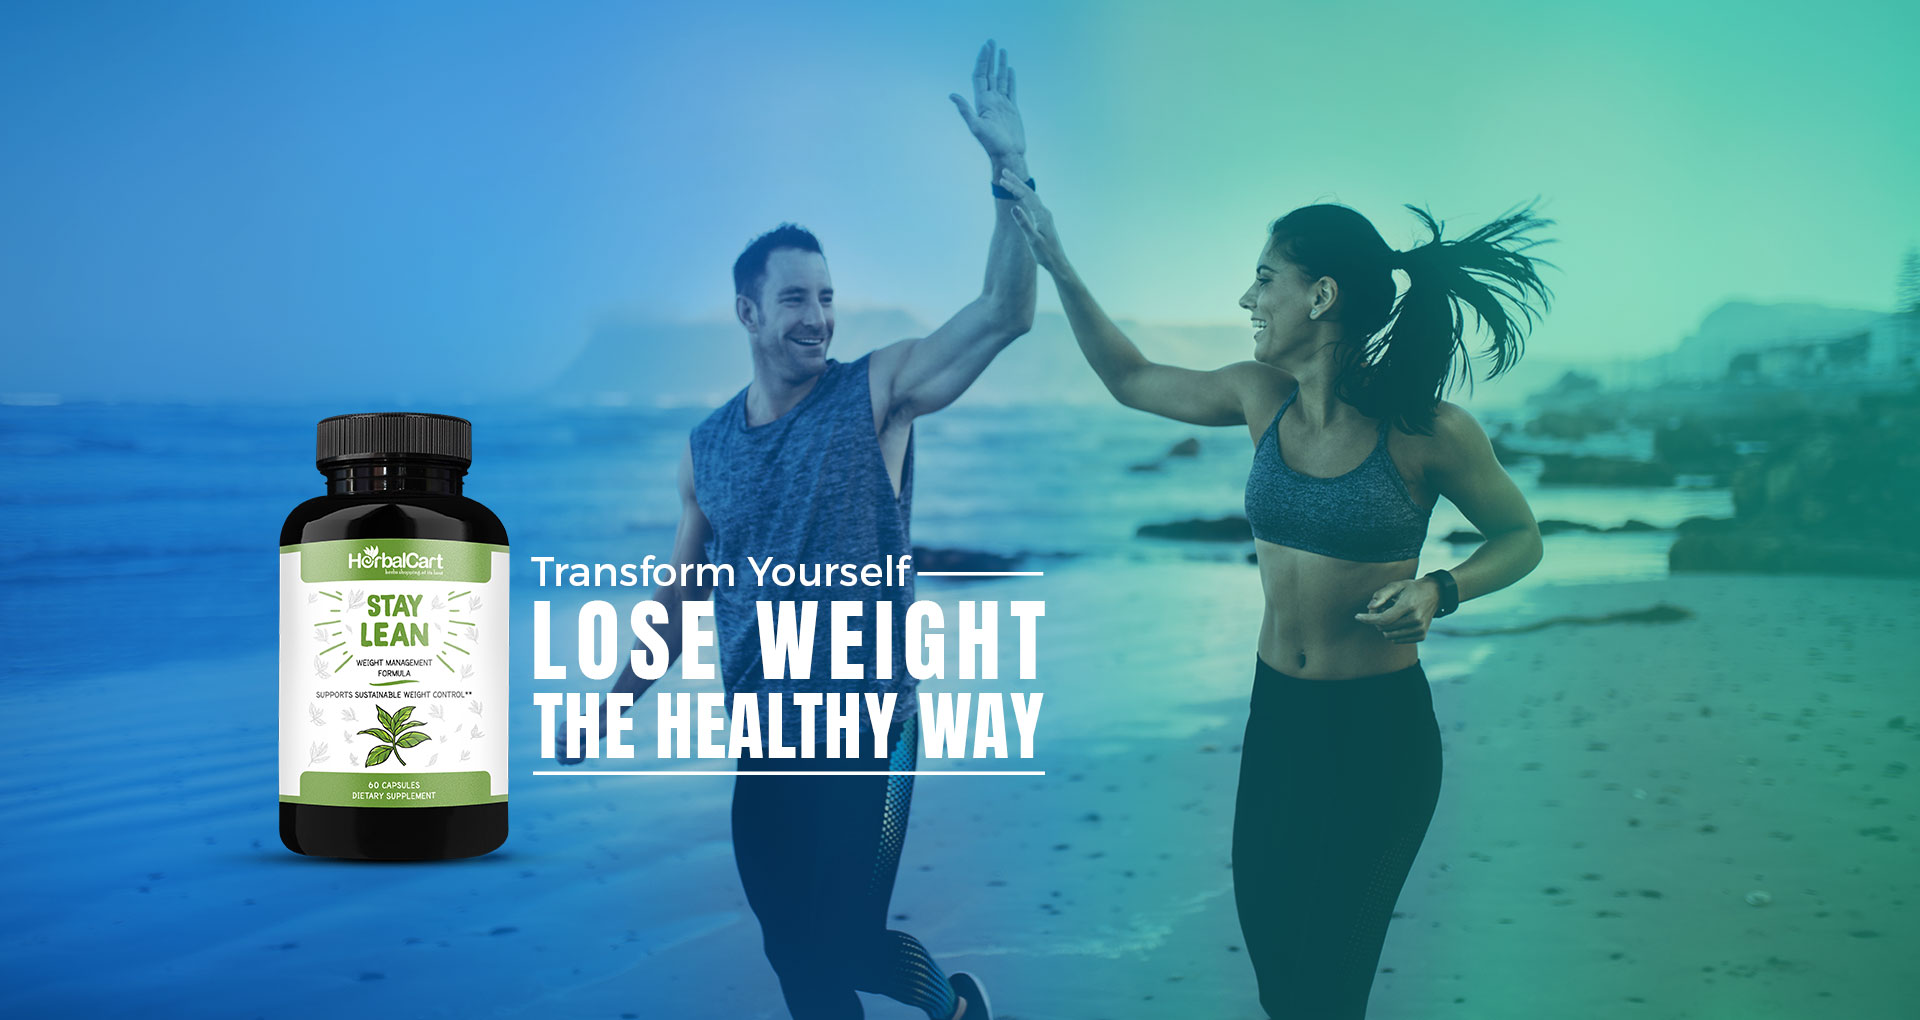 Couple transforming theirselves by loosing weight | Stay lean